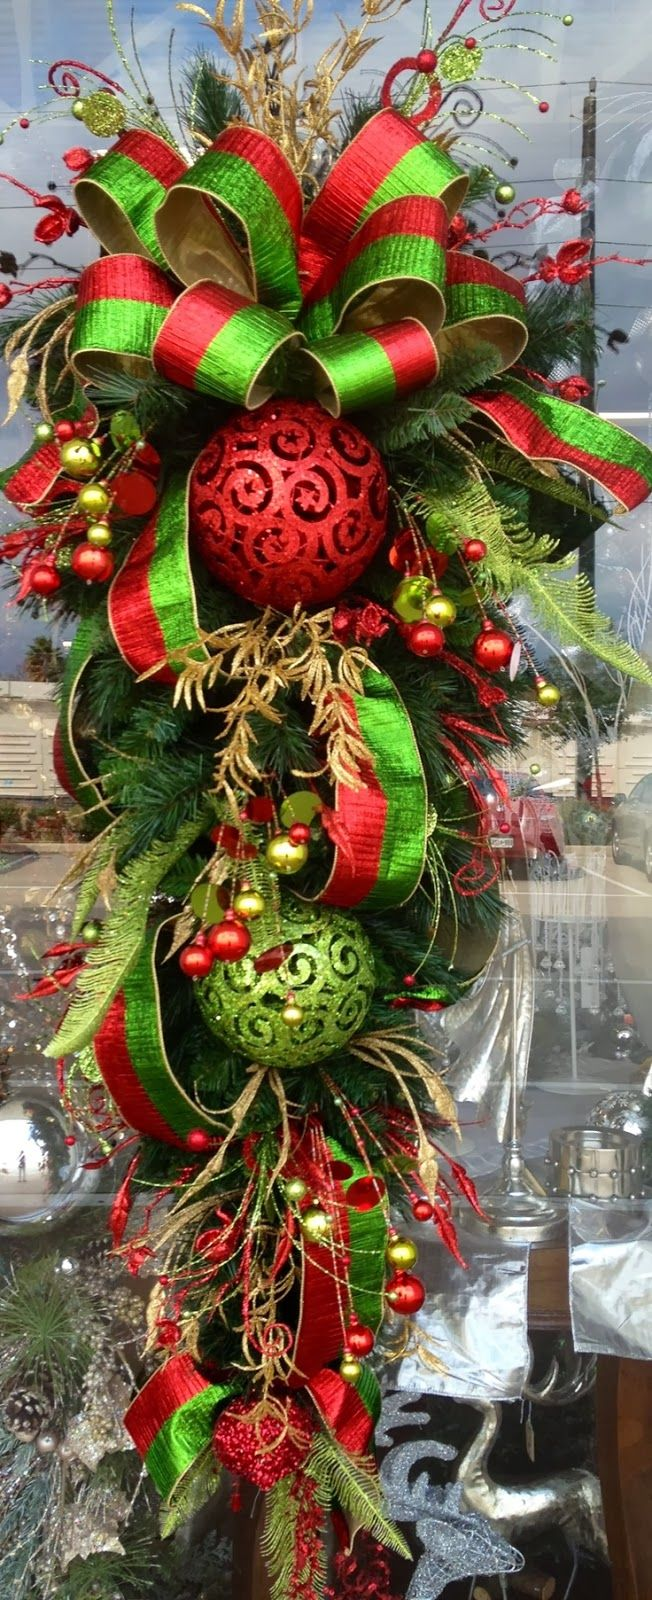 Front door deco mesh christmas decorations - How About Some Christmas Decoration Let S Make Kayrun S Virtual Stocking Merry And Bright Even Though This Technically Wouldn T Even Fit In A Stocking